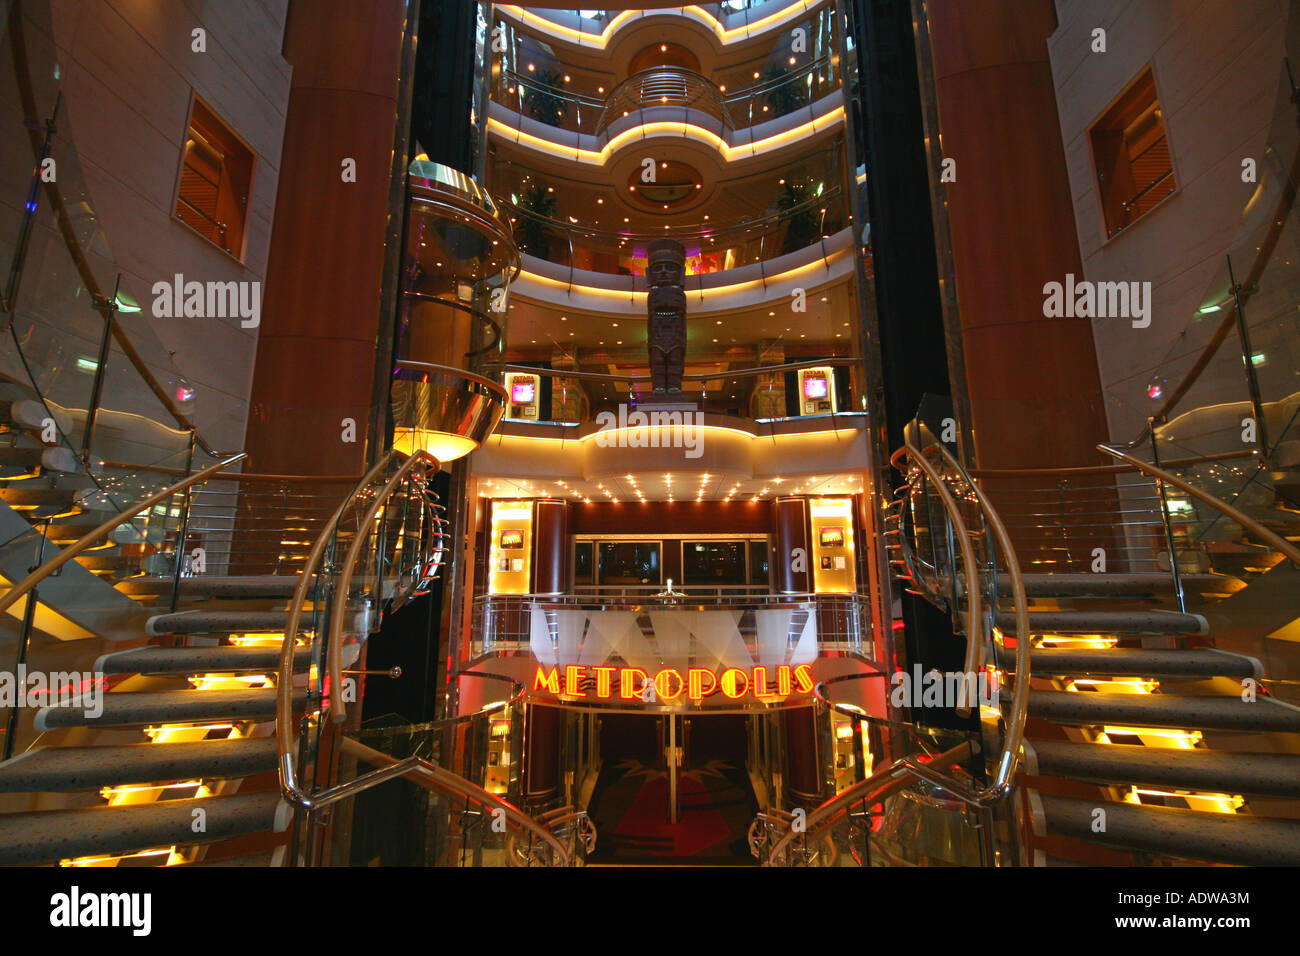 Metropolis theatre entrance on board the Royal Caribbean Navigator of the Seas cruise ship - Stock Image